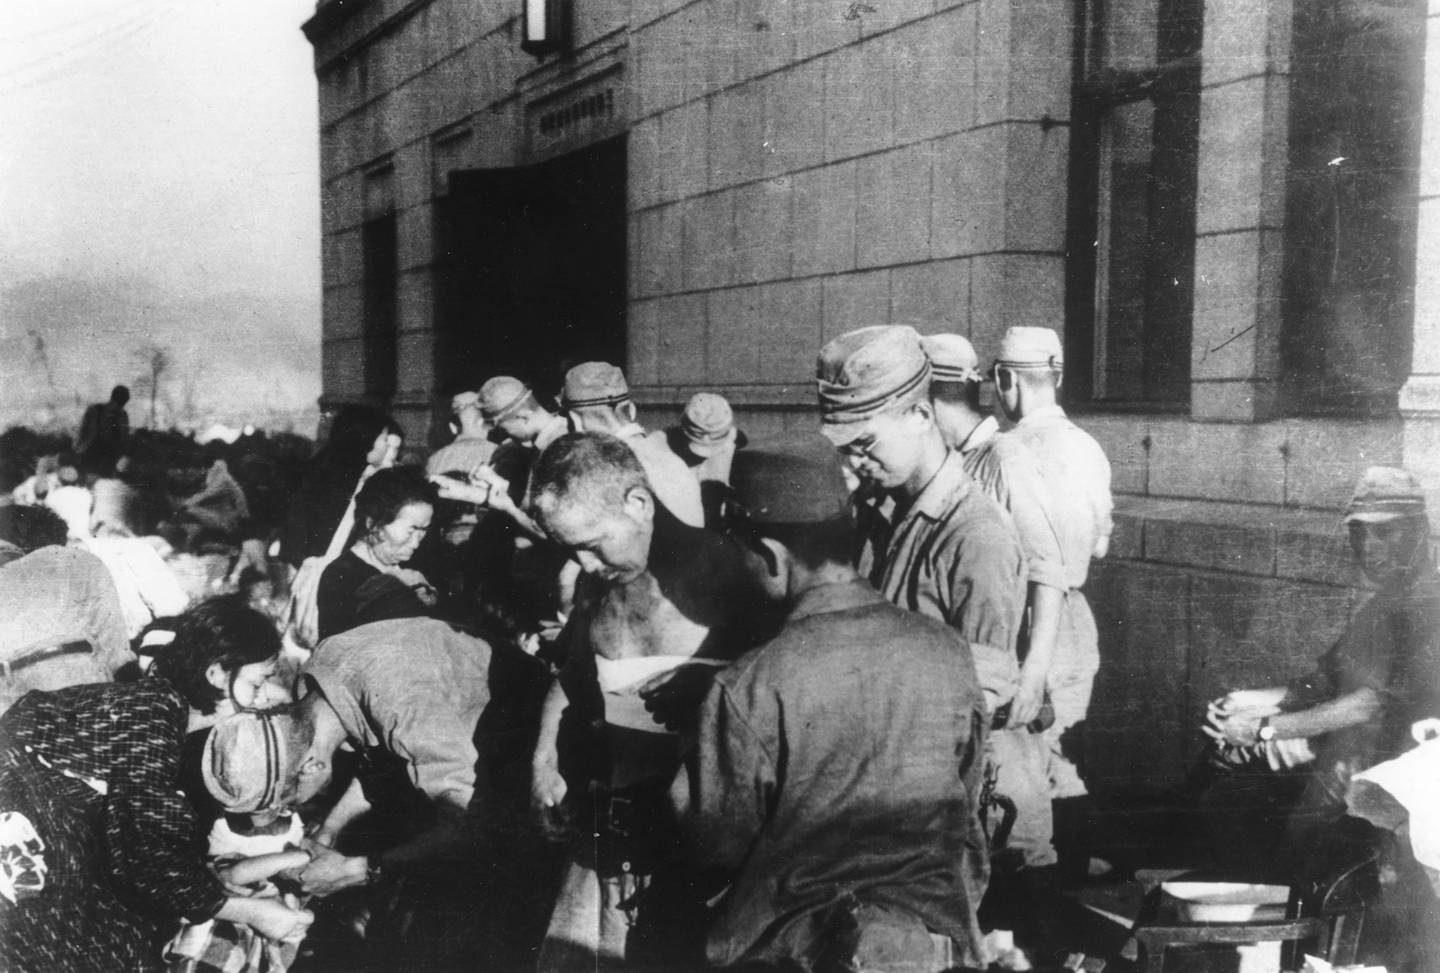 In this Aug. 6, 1945, file photo, survivors are seen as they receive emergency treatment by military medics shortly after the first atomic bomb ever used in warfare was dropped by the United States over Hiroshima, Japan.